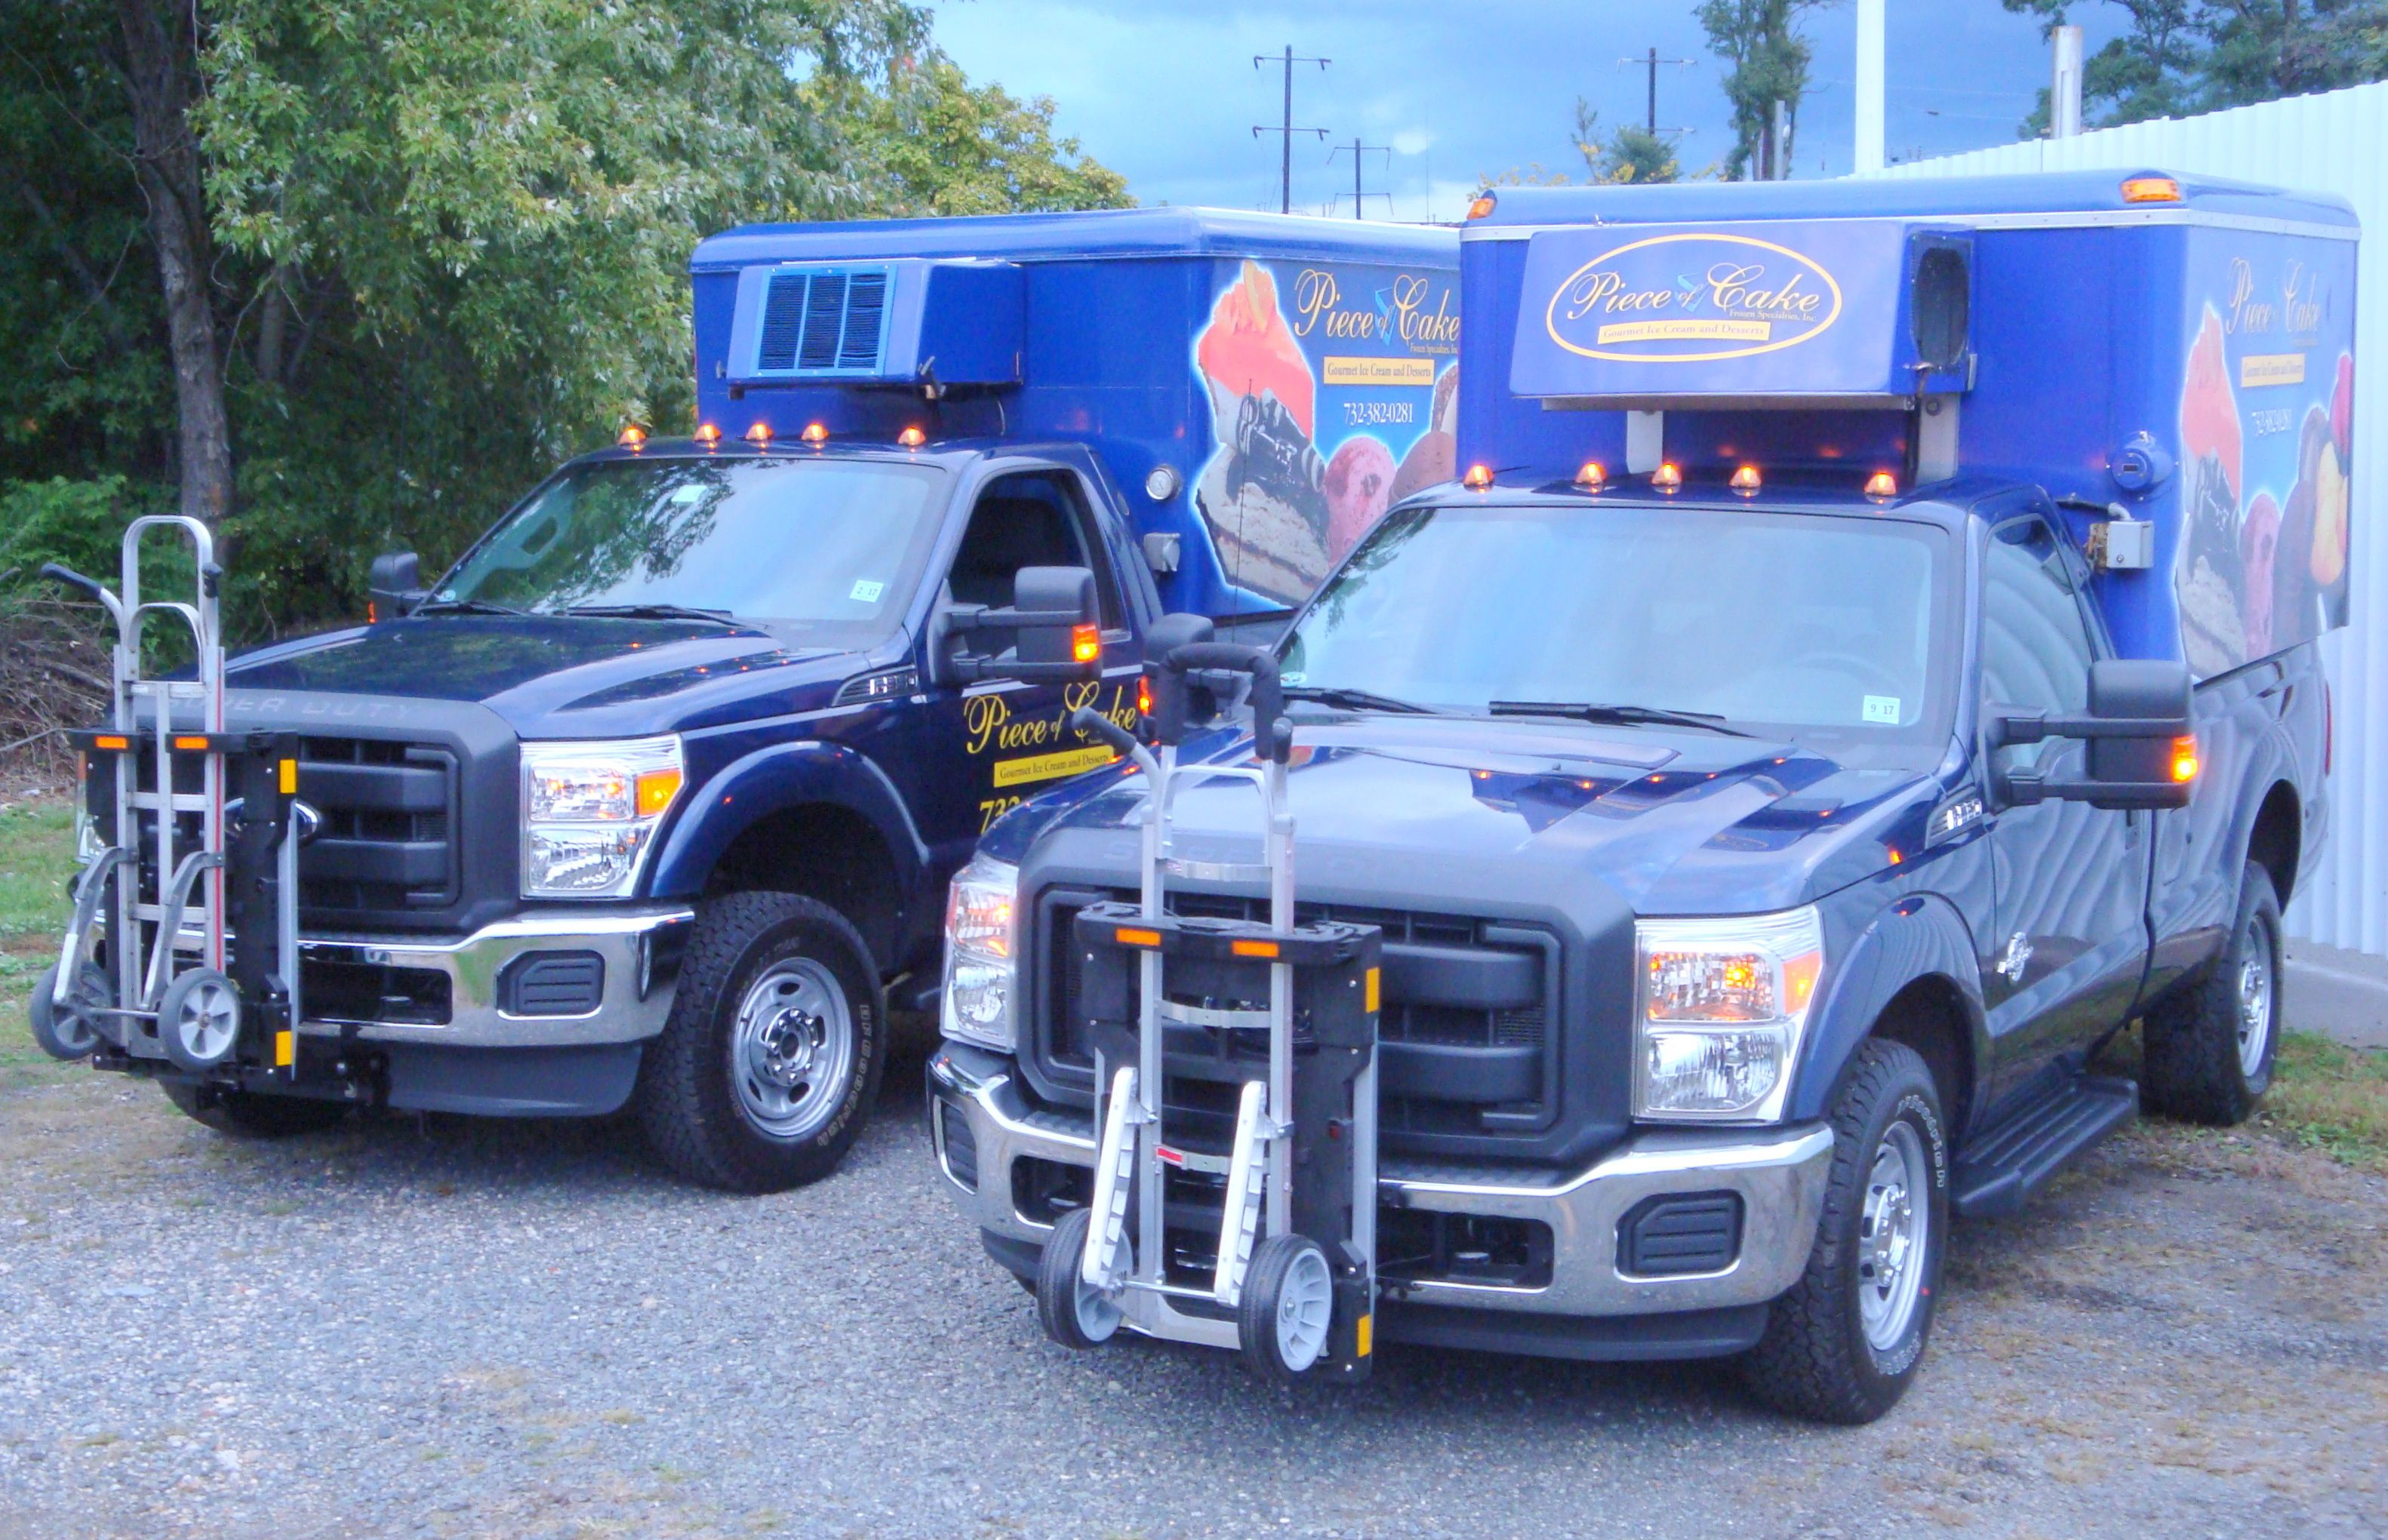 Hts Systems Hts 10t Ultra Rack Units On Ford F350 Pick Up Trucks Piece Of Cake Frozen Specialties Has Been A Happy Hts Cus Trucks Hand Trucks Truck Transport